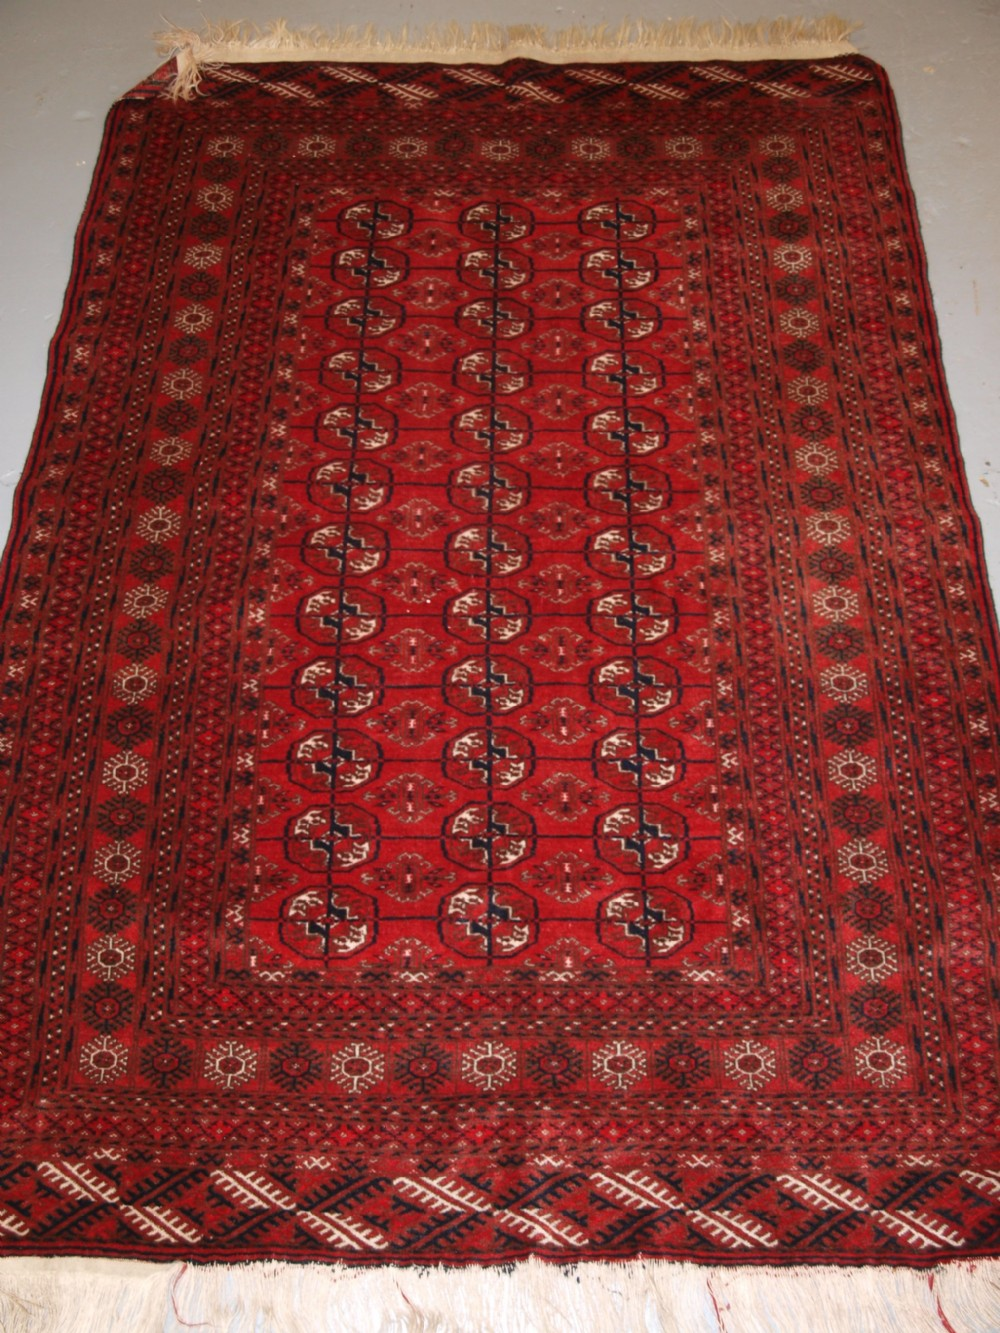 old afghan village rug very fine weave tekke turkmen design circa 1920